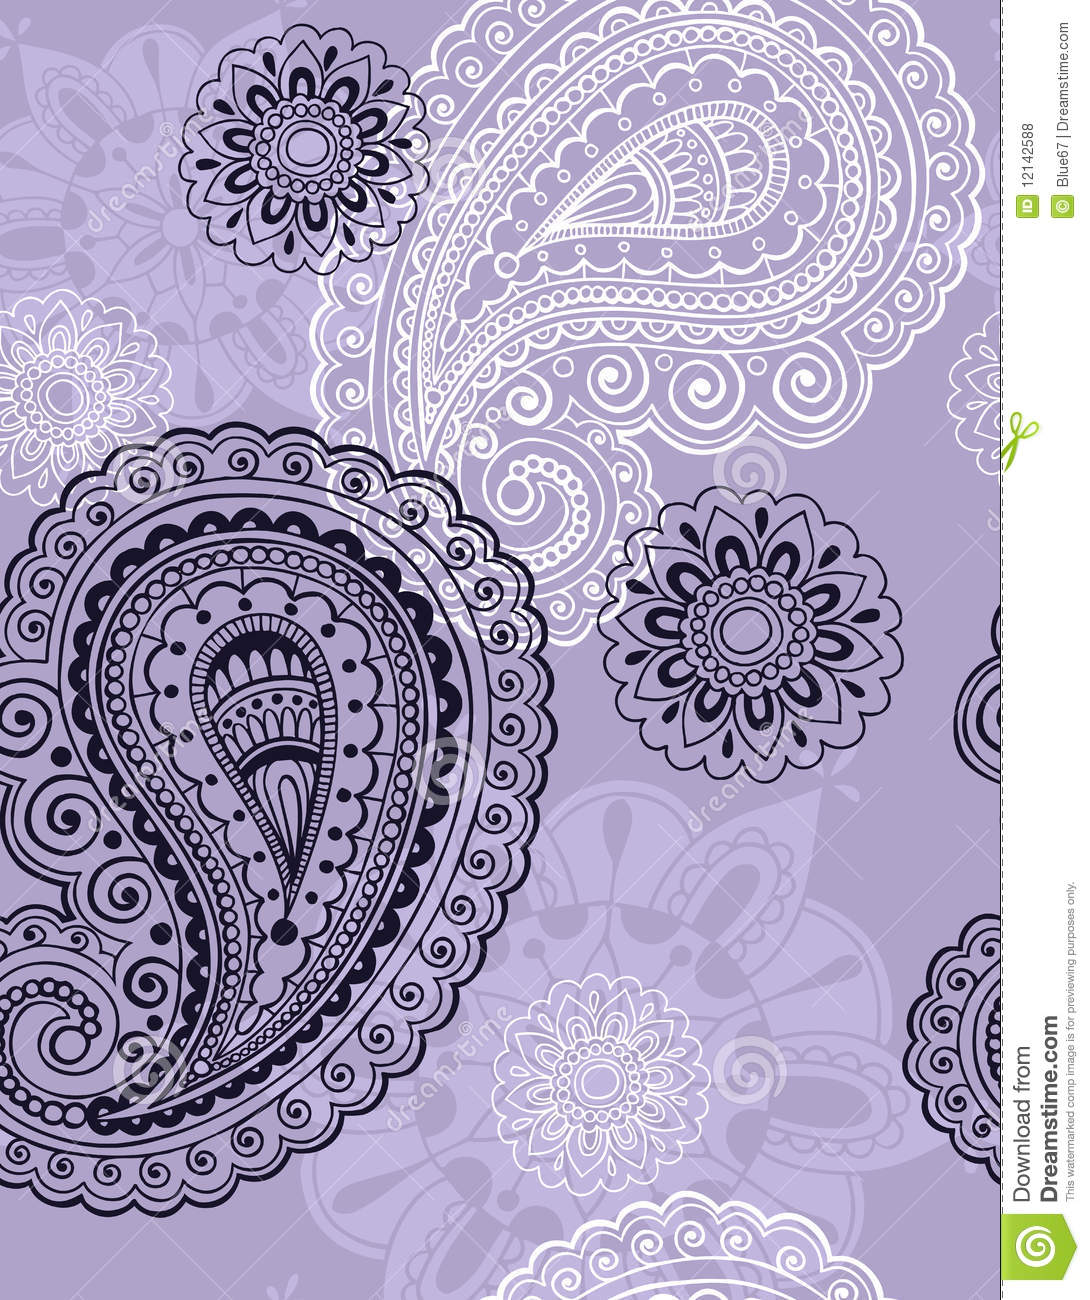 delicate henna paisley seamless repeat pattern royalty free stock photos image 12142588